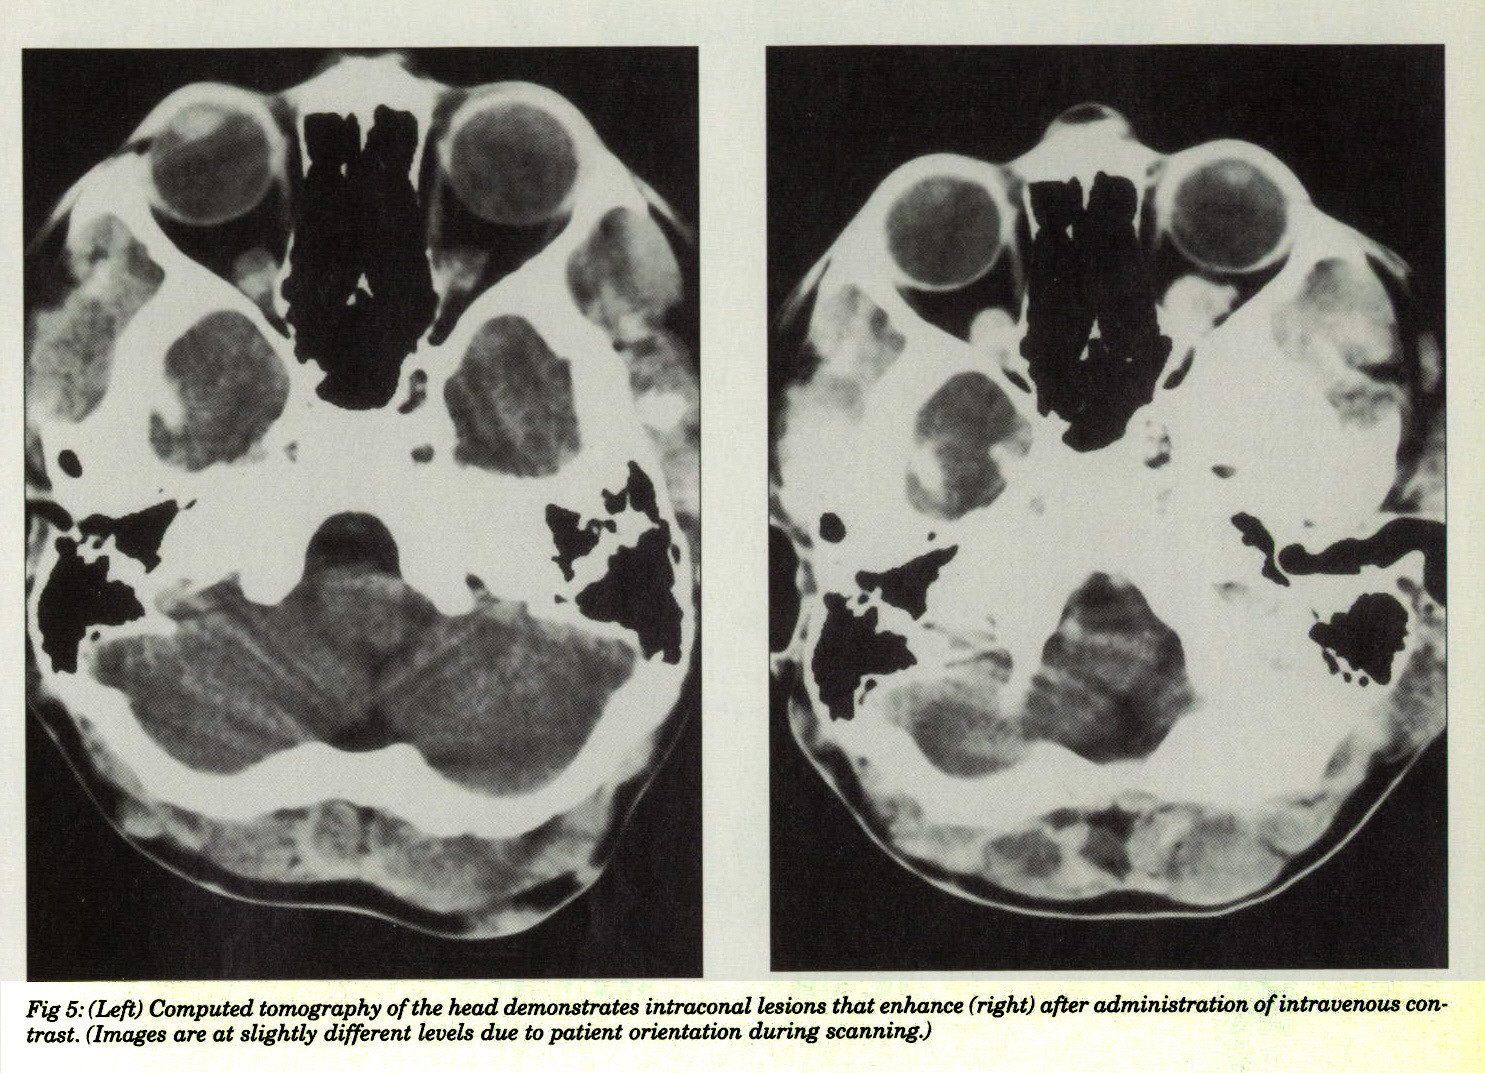 Fig 5: (Left) Computed tomography of the head demonstrates intraconal lesions that enhance (right) after administration of intravenous contrast. (Images are at slightly different levels due to patient orientation during scanning.)